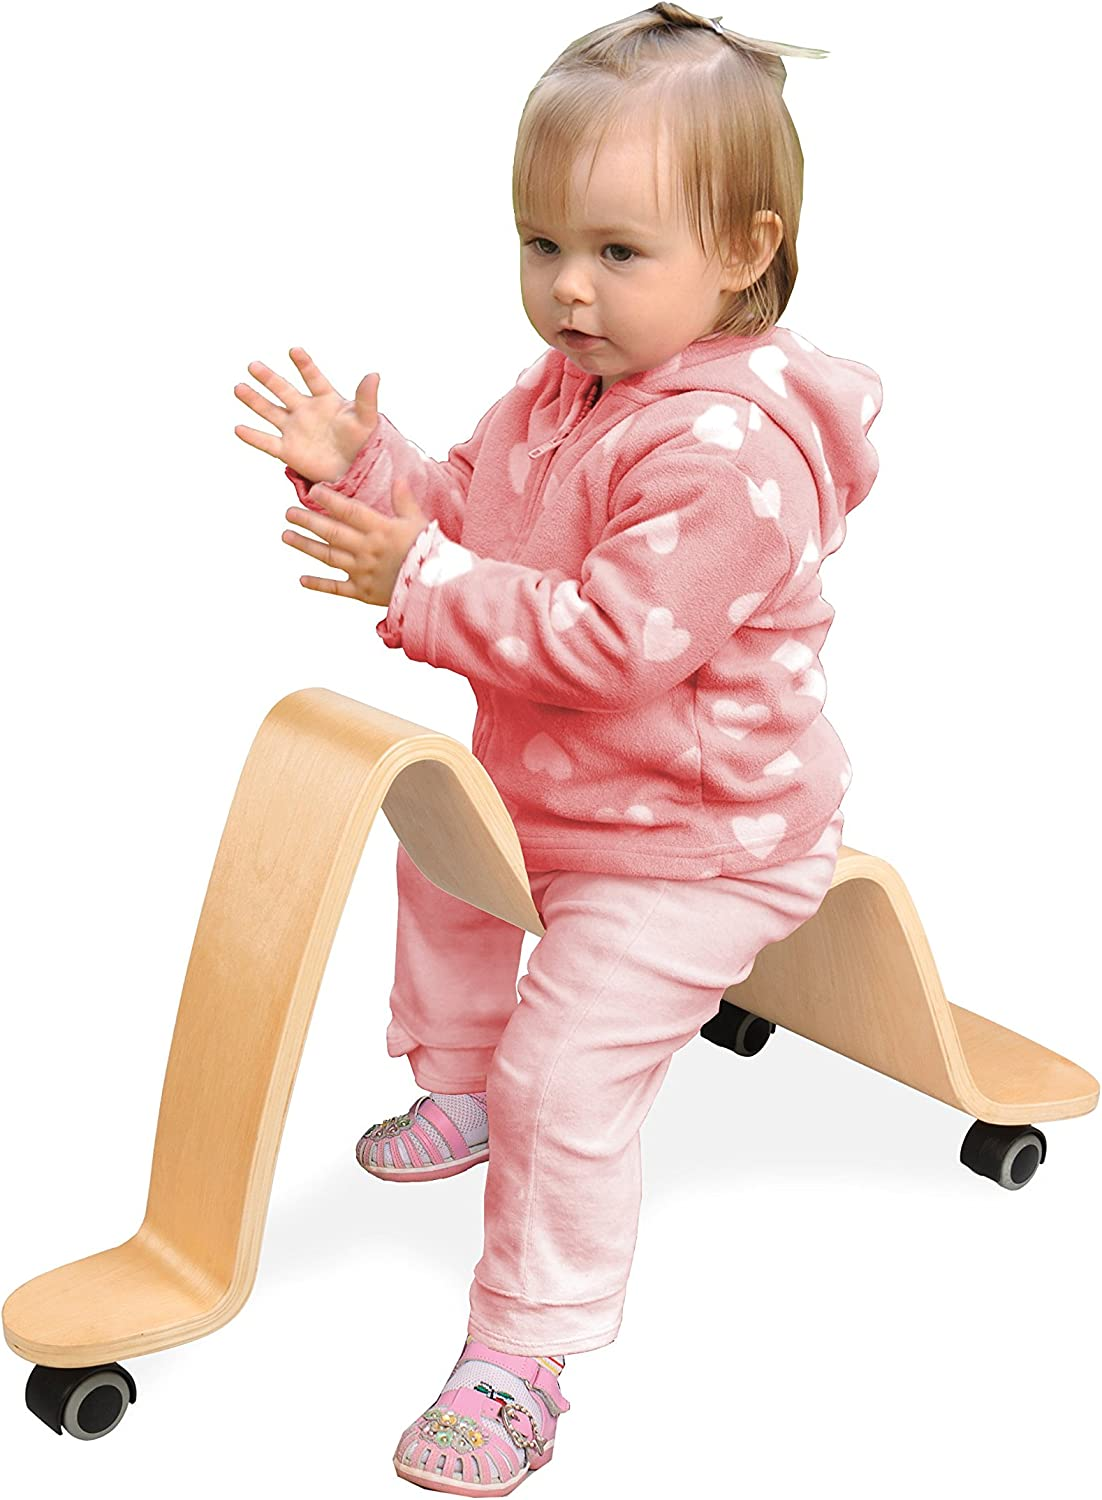 Wave Wooden Scooter - Solid Wood - Ride On Bike Wheels Move in All Directions!